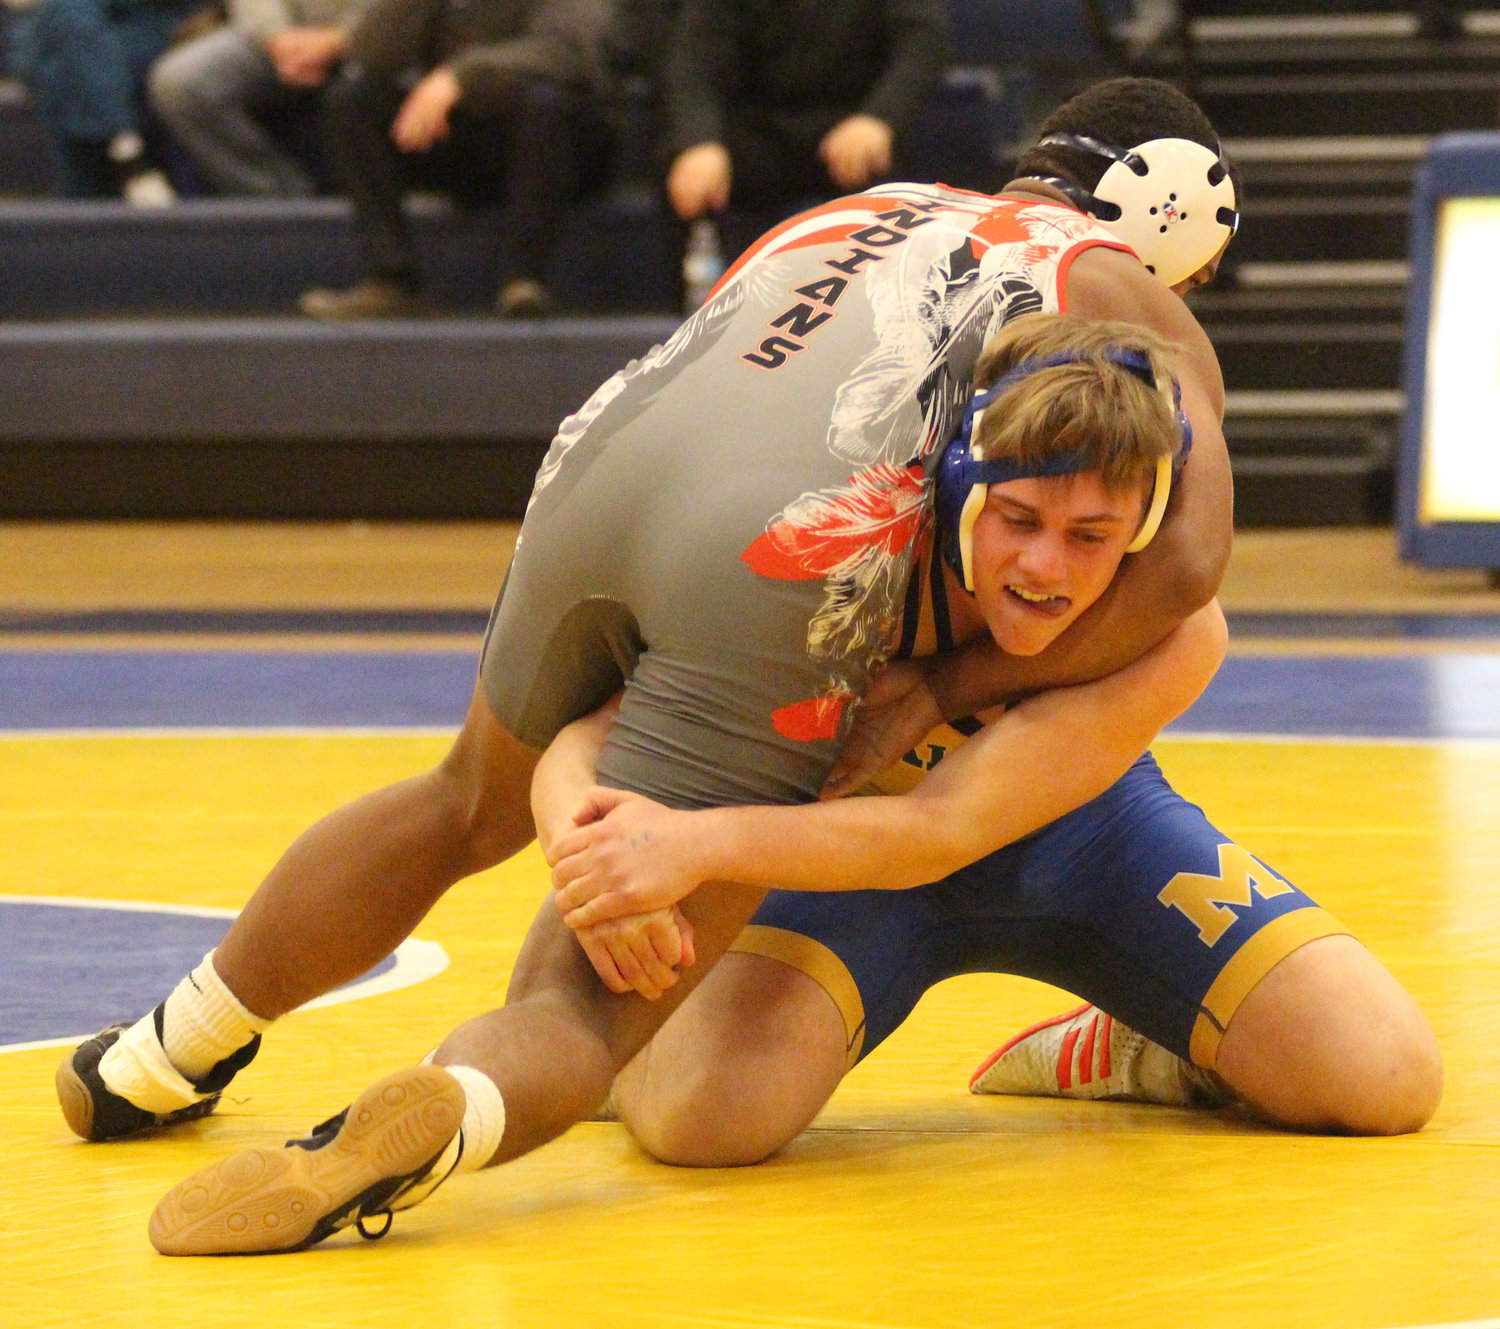 Middletown senior Case Woodley scored a third-period pin over Ransome Turner-Rush of Susquehanna Township at 170 pounds.